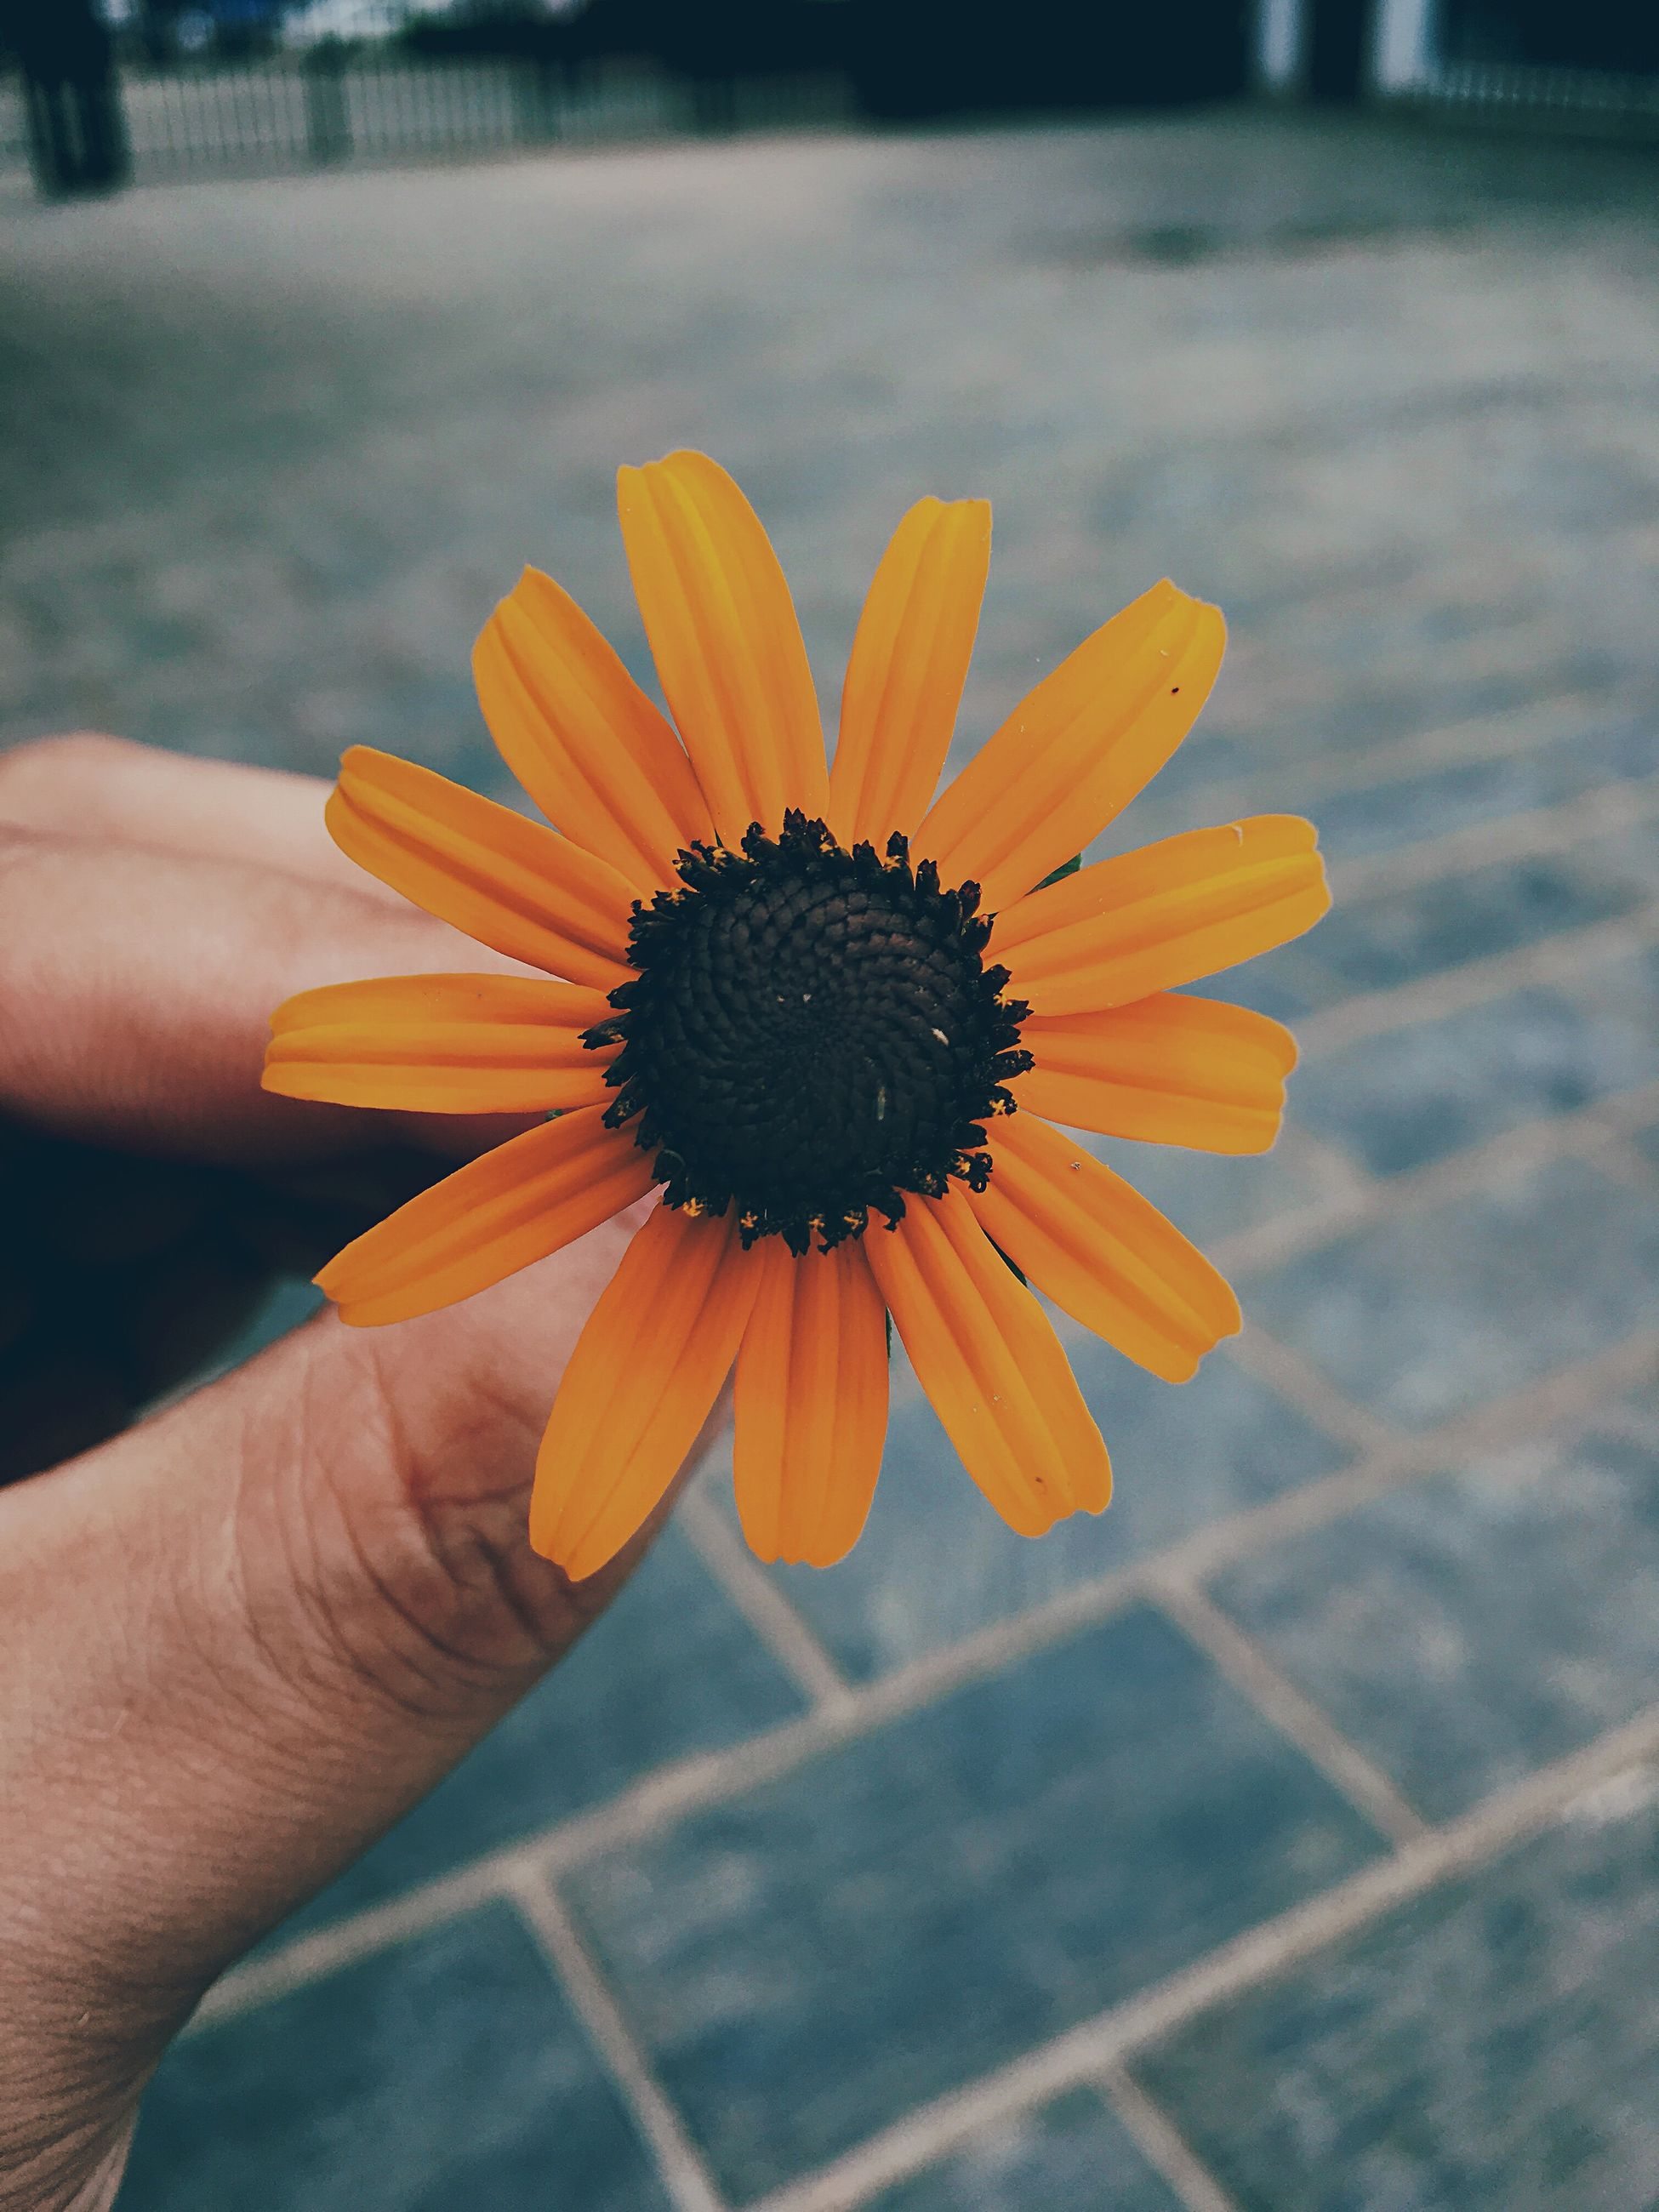 person, holding, flower, part of, cropped, human finger, unrecognizable person, focus on foreground, petal, fragility, close-up, freshness, flower head, personal perspective, yellow, pollen, daisy, selective focus, lifestyles, outdoors, day, nature, beauty in nature, stamen, detail, botany, softness